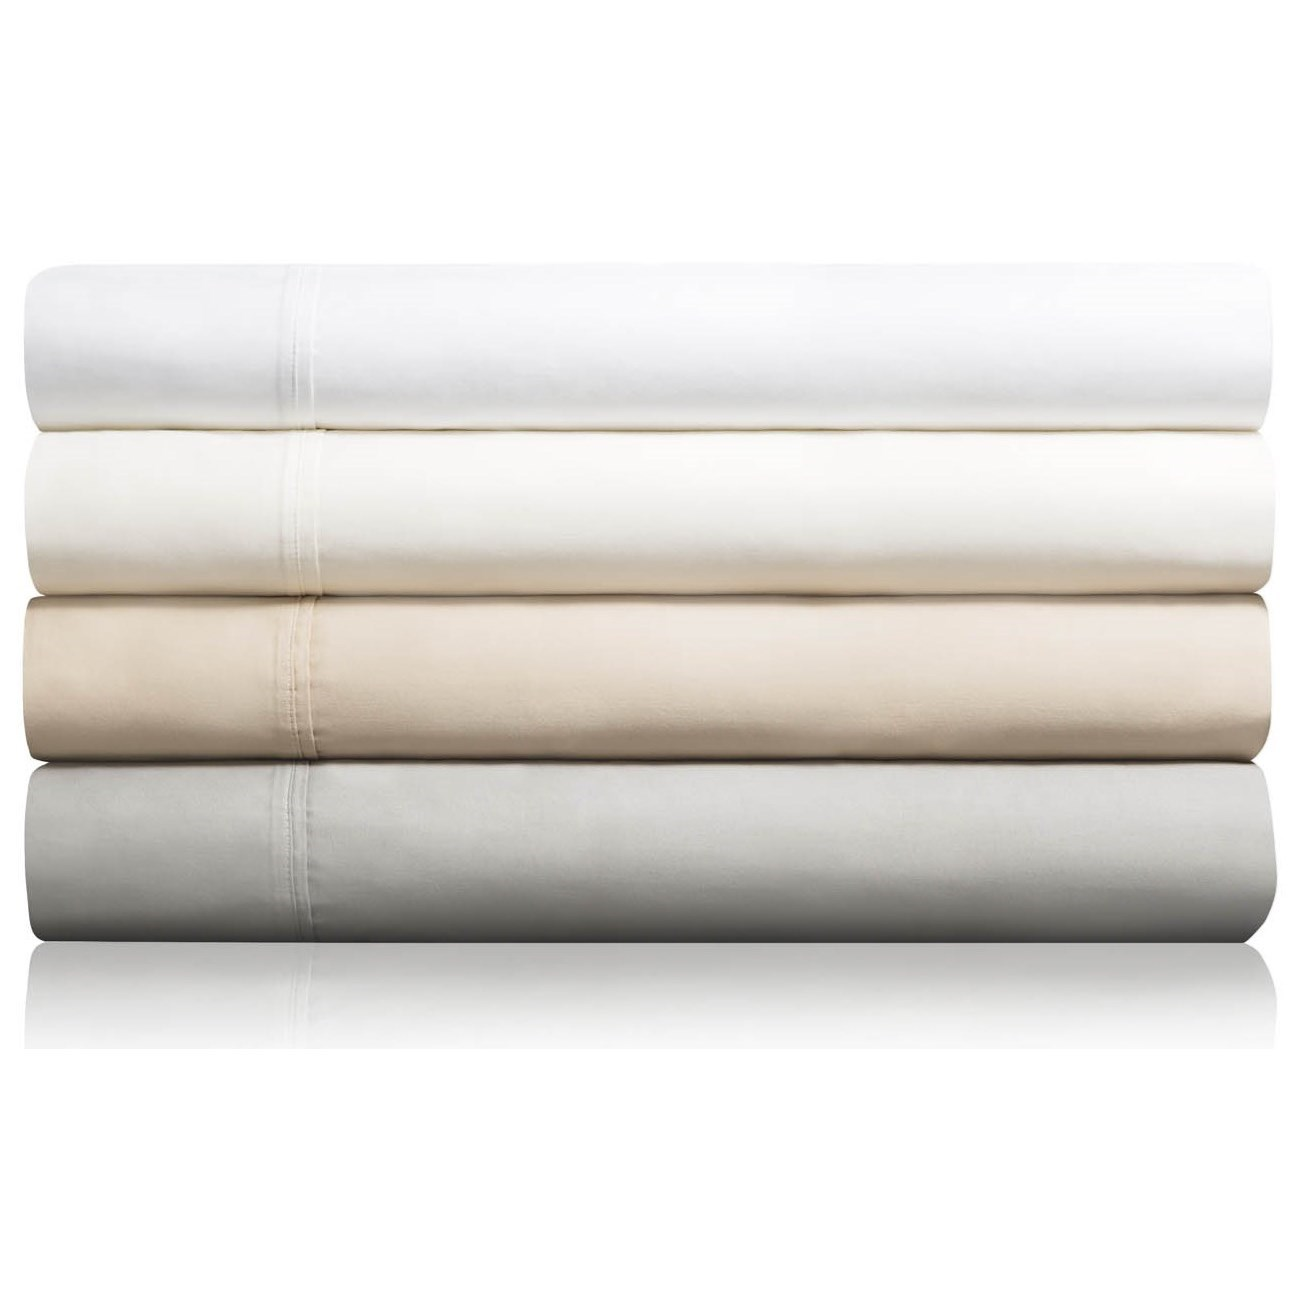 Cotton Blend Twin XL 600 TC Cotton Blend Sheet Set by Malouf at Northeast Factory Direct